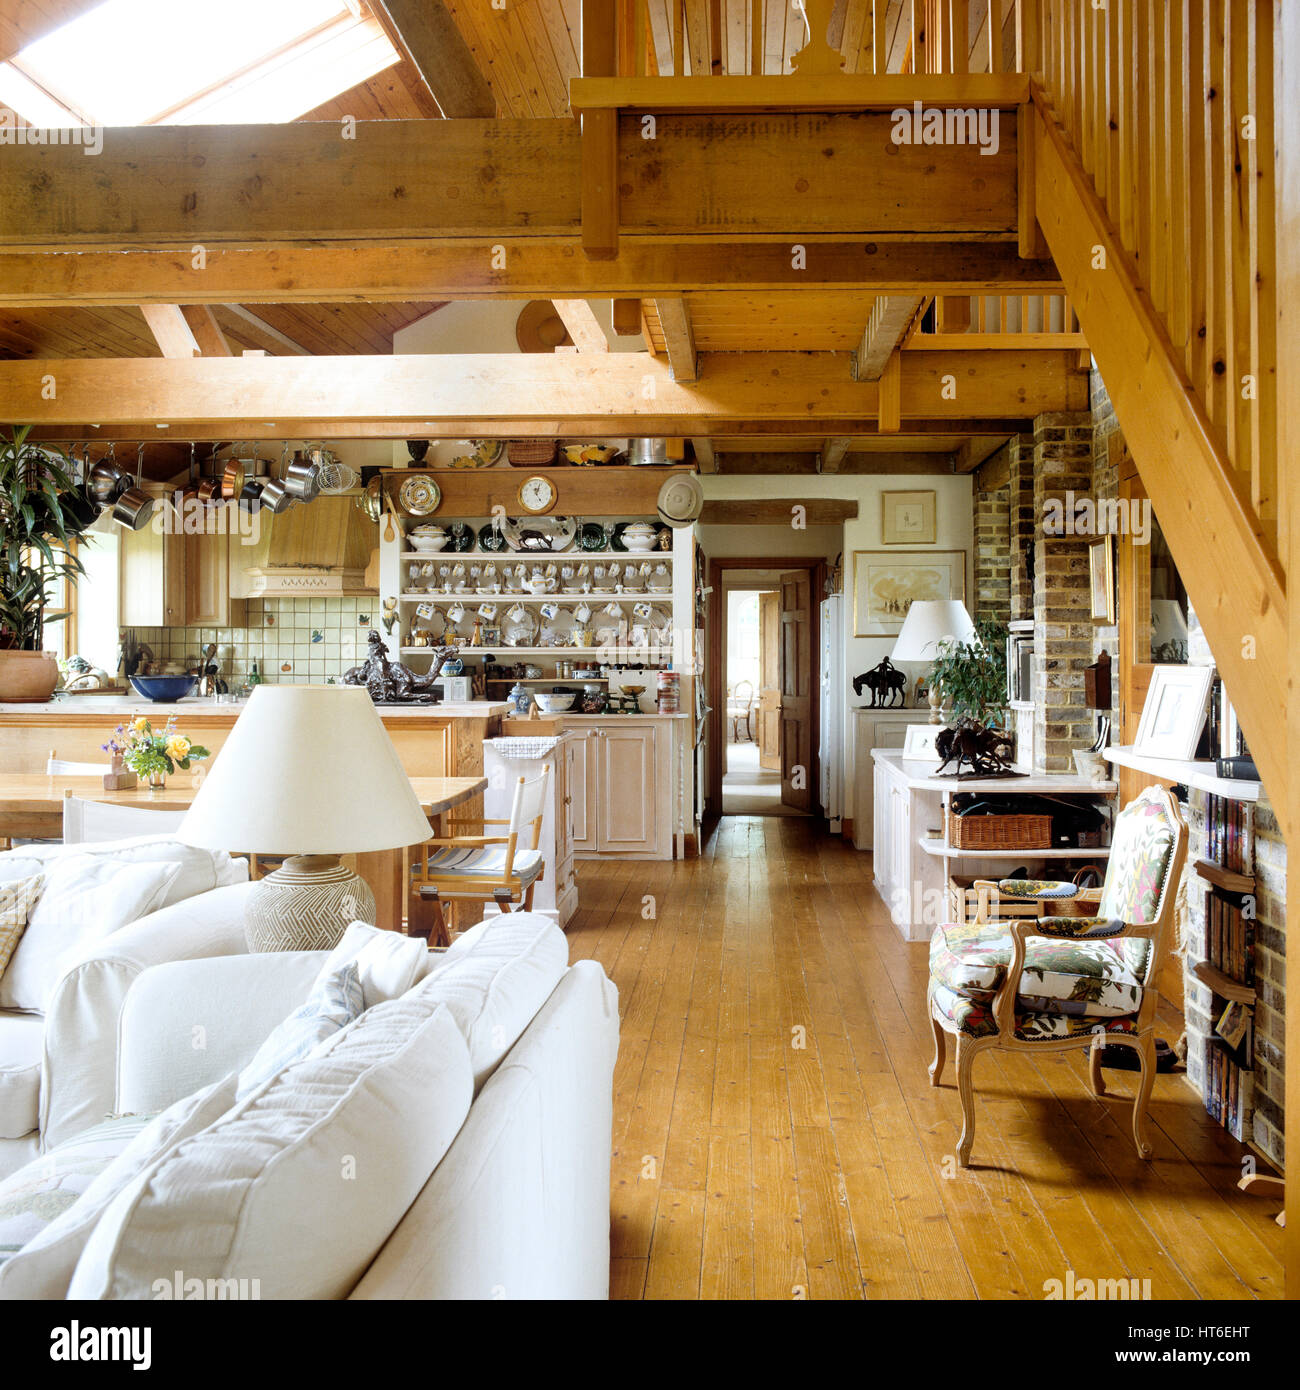 Open plan living space. - Stock Image